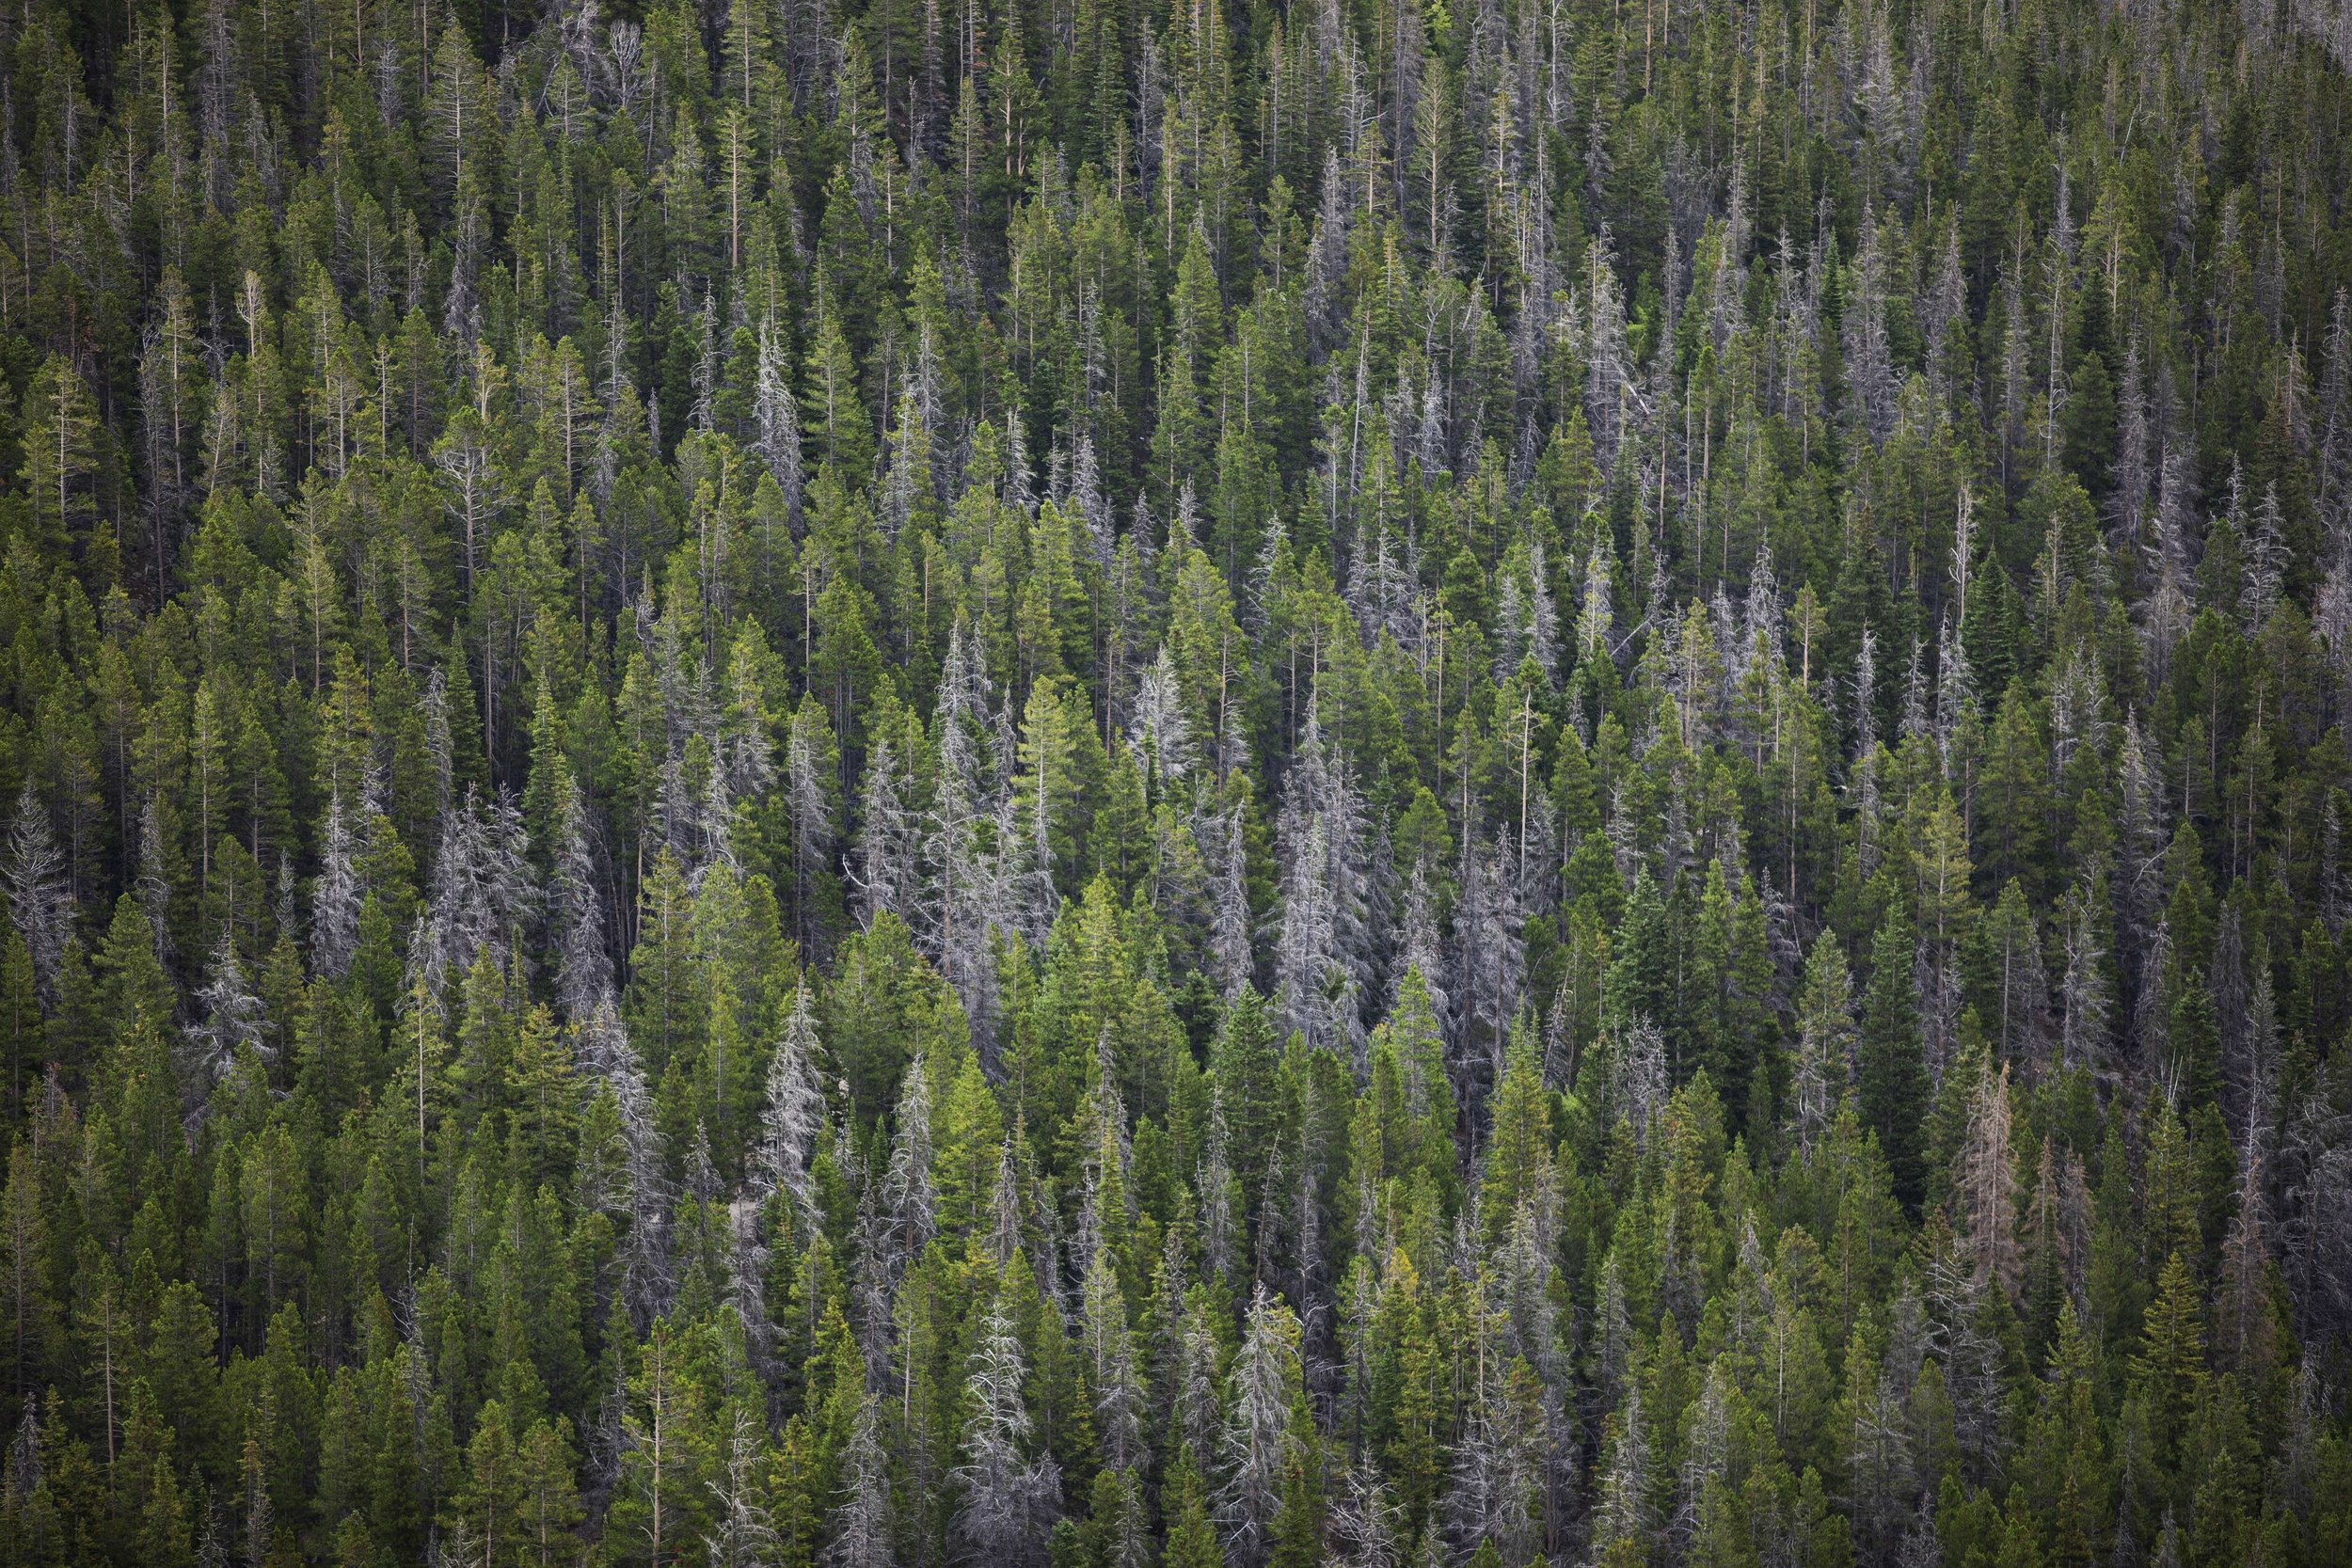 Trees - Rocky Mountain National Park, Colorado